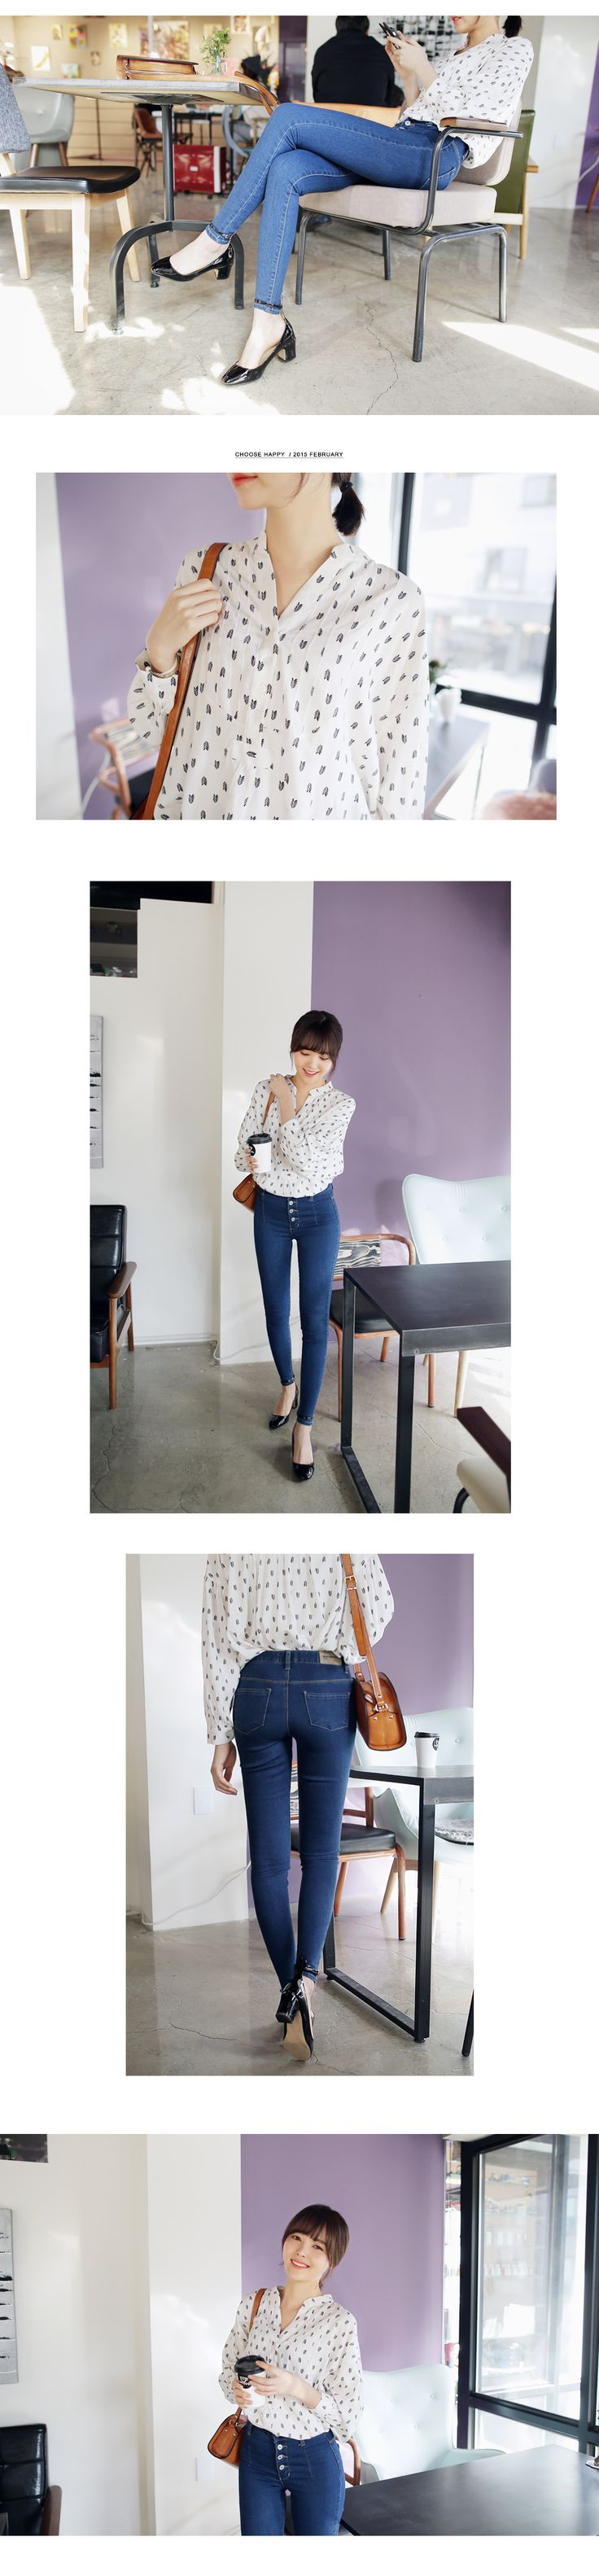 http://www.dahong.co.kr/NShopping/GoodView_Item.asp?Gserial=670006